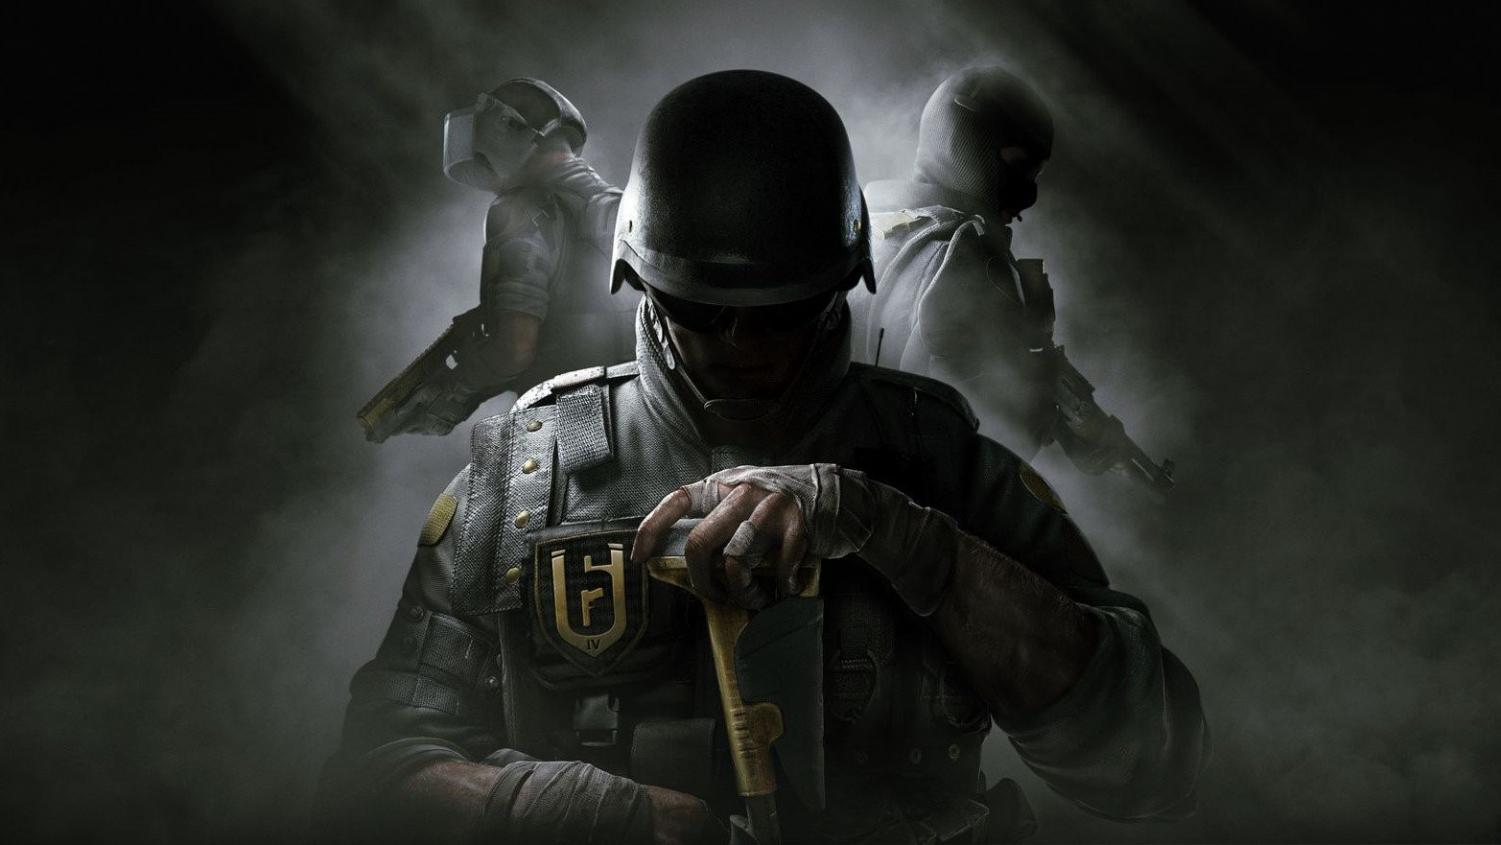 Picture from Ubisoft's Year 4 Pass